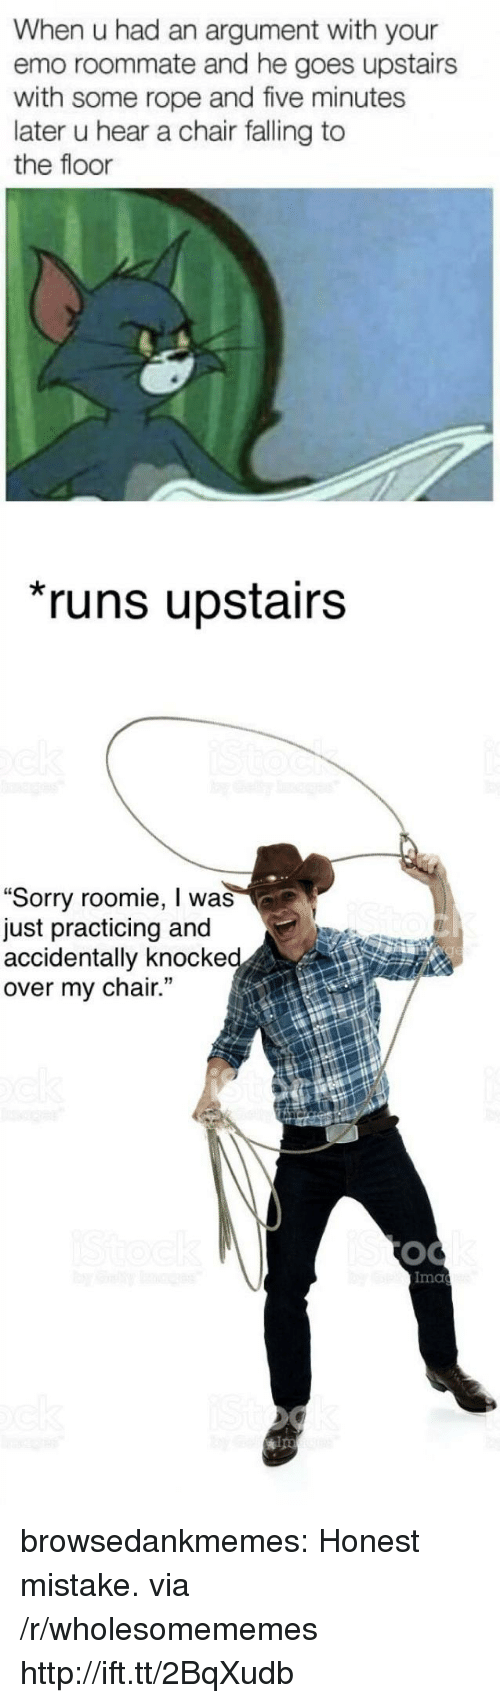 """ips: When u had an argument with your  emo roommate and he goes upstairs  with some rope and five minutes  later u hear a chair falling to  the floor  runs upstairs  """"Sorry roomie, I was  just practicing and  accidentally knocke  over my chair.  Ima  ips browsedankmemes:  Honest mistake. via /r/wholesomememes http://ift.tt/2BqXudb"""